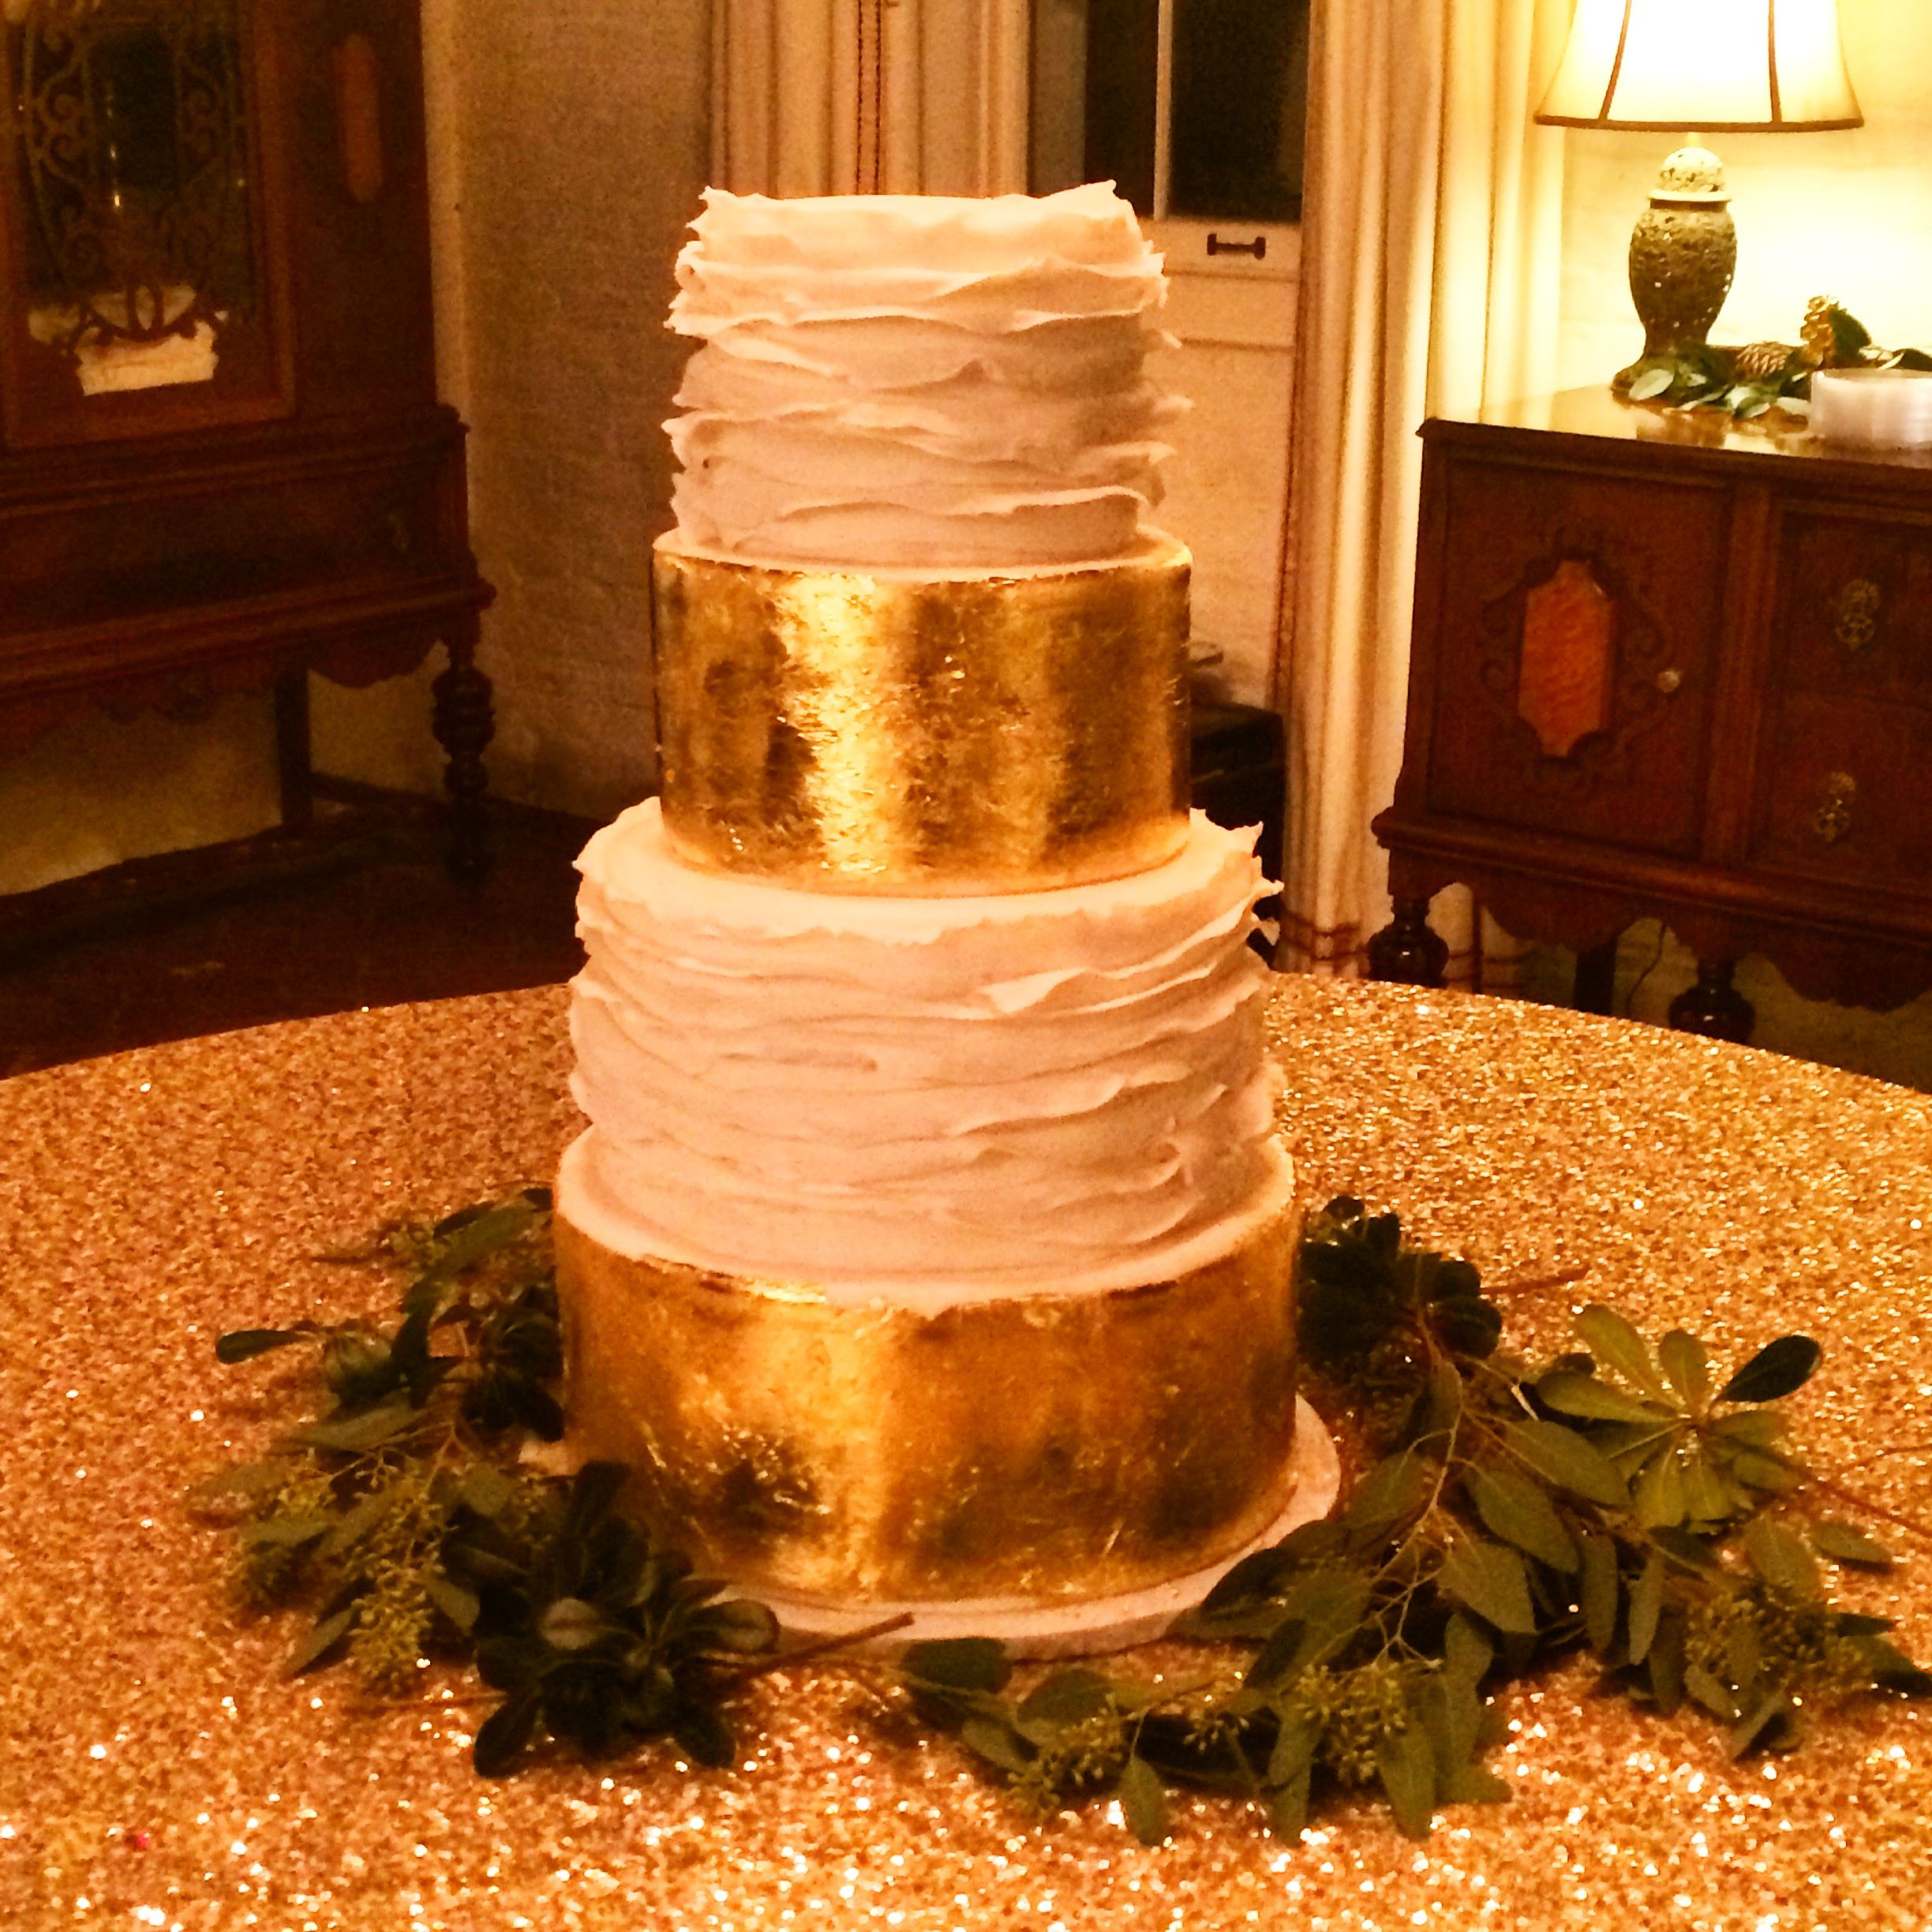 Four Tiered Fondant Ruffle And Gold Leaf Wedding Cake By Les Amis